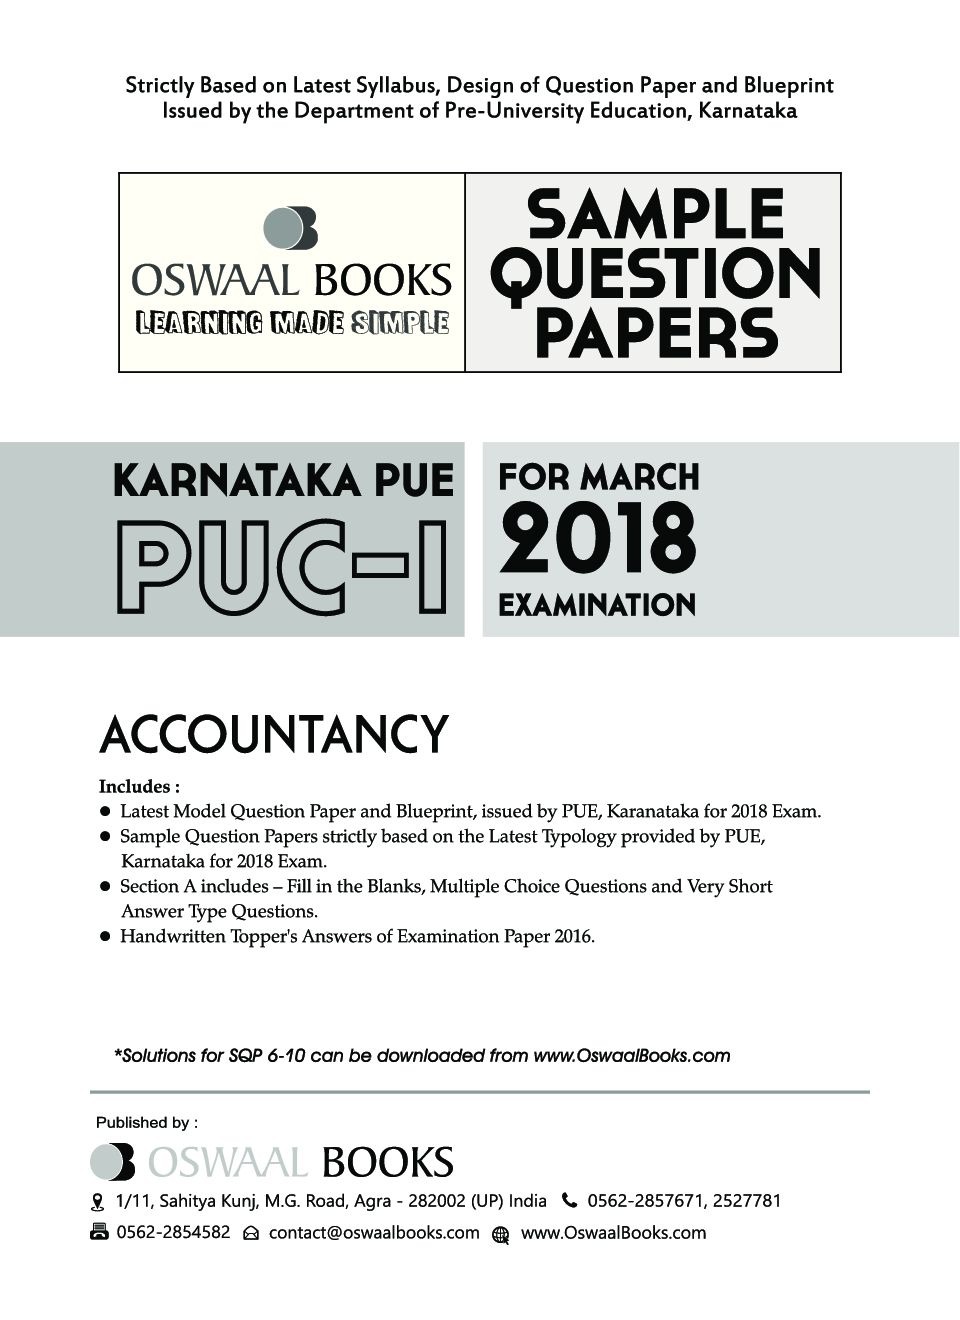 Download oswaal karnataka pue sample question papers for puc i oswaal karnataka pue sample question papers for puc i accountancy march 2018 exam by panel of experts malvernweather Image collections